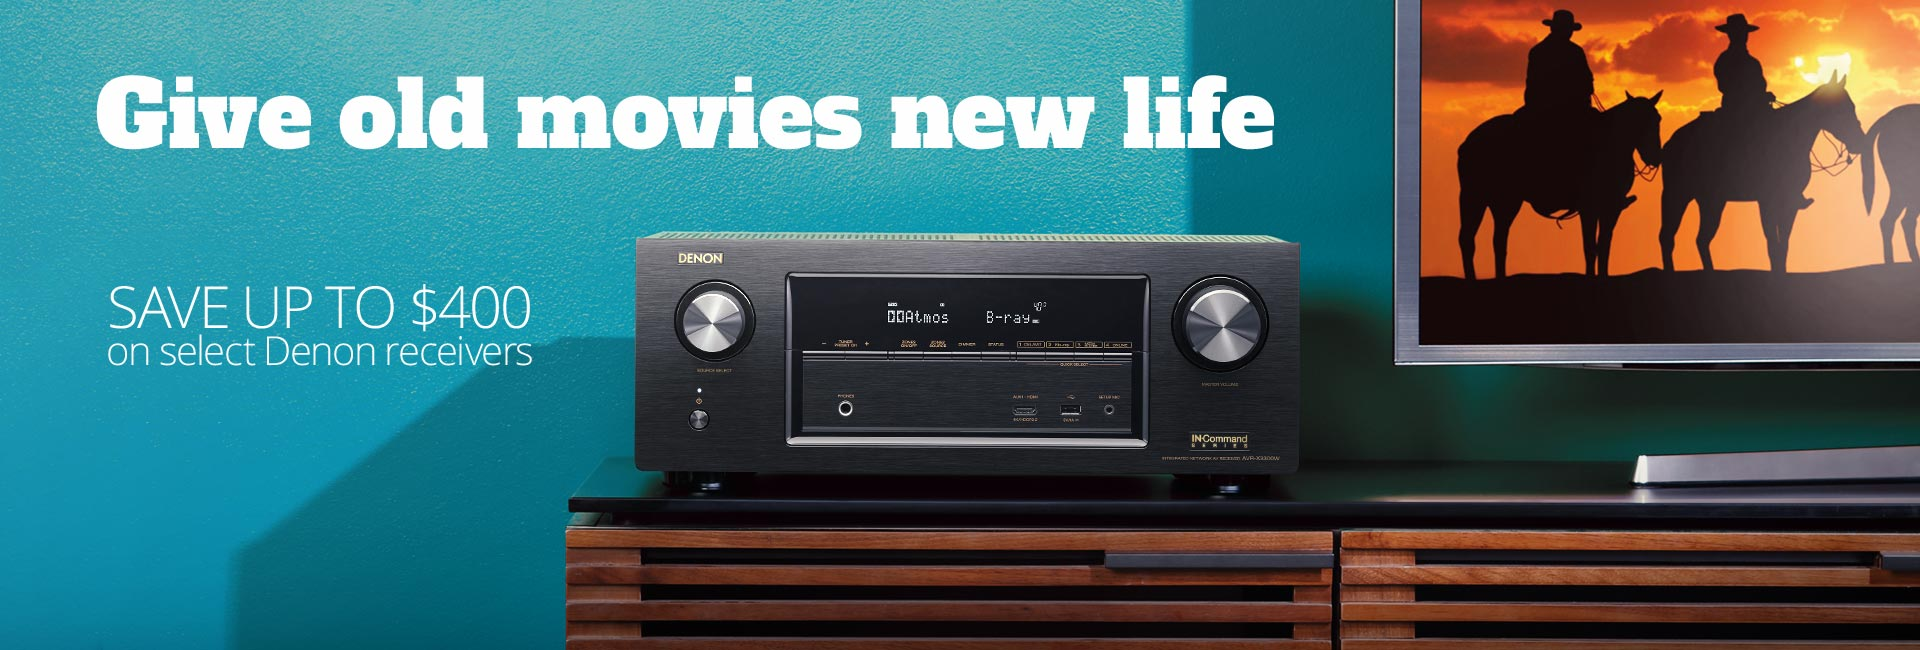 Give old movies new life Save up to $400 on select Denon receivers